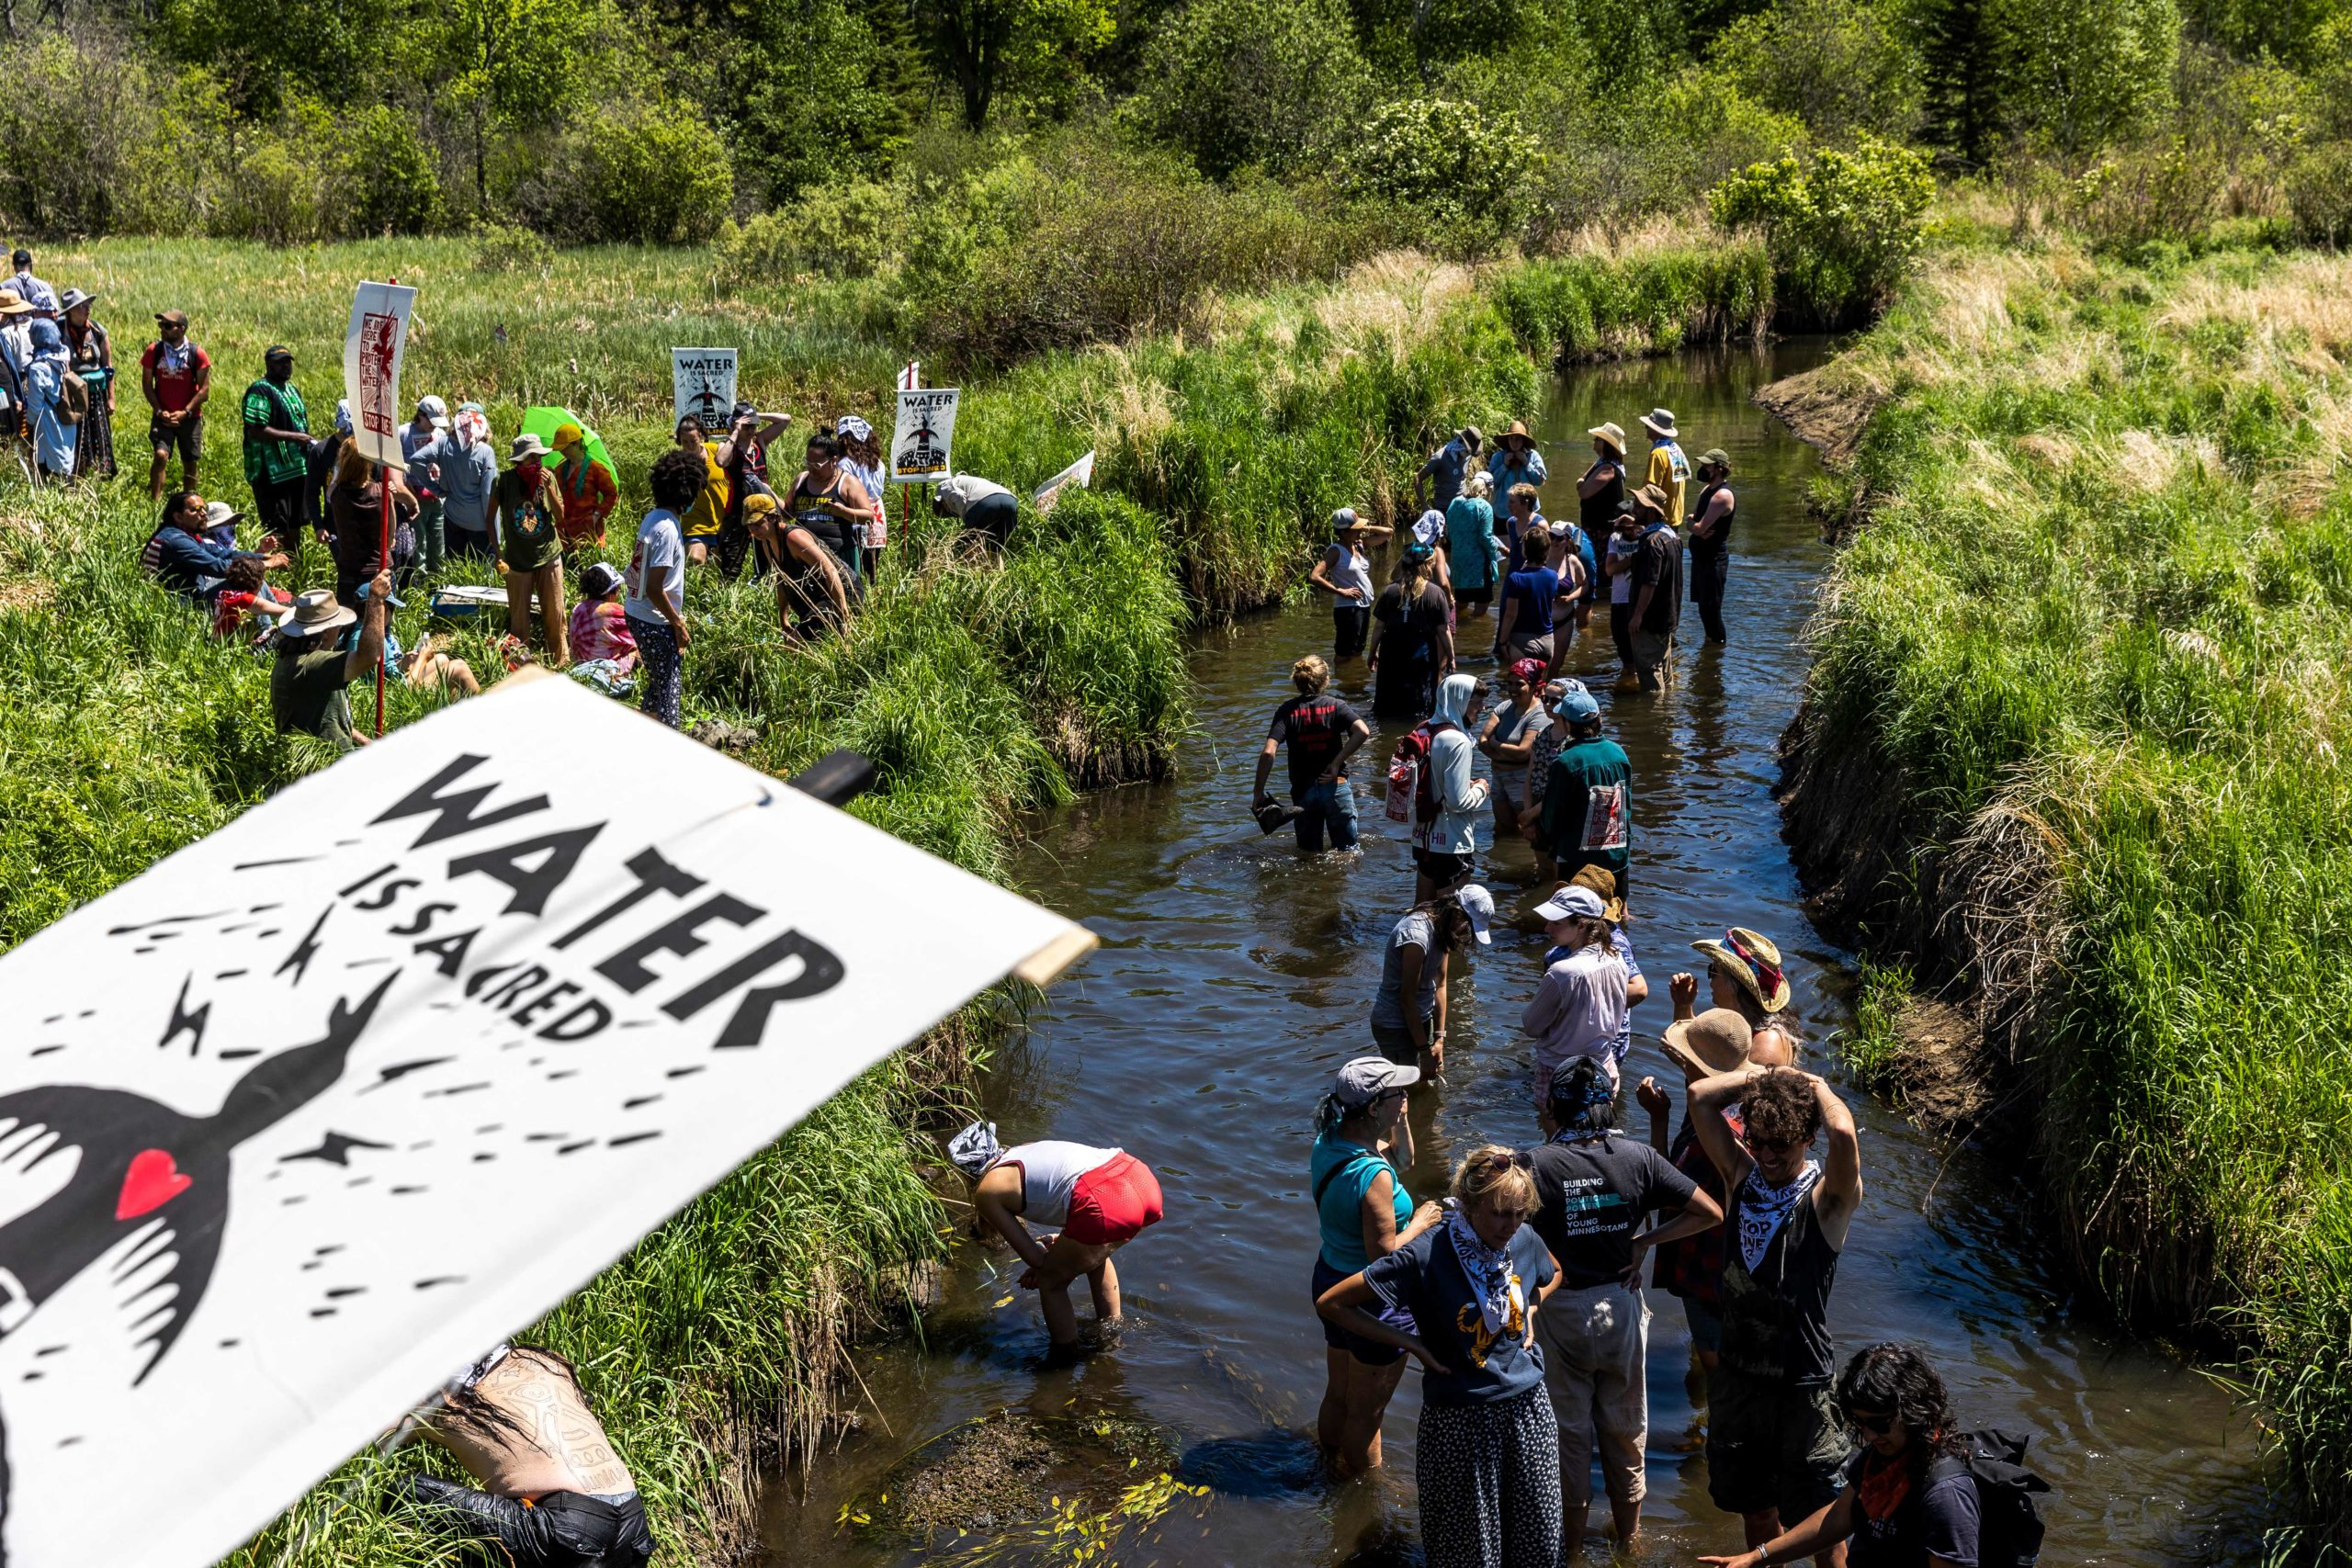 Climate activist and Indigenous community members gather on the river for a traditional water ceremony during a rally and march to protest the construction of Enbridge Line 3 pipeline in Solvay, Minnesota on June 7, 2021. - Line 3 is an oil sands pipeline which runs from Hardisty, Alberta, Canada to Superior, Wisconsin in the United States. In 2014, a new route for the Line 3 pipeline was proposed to allow an increased volume of oil to be transported daily. While that project has been approved in Canada, Wisconsin, and North Dakota, it has sparked continued resistance from climate justice groups and Native American communities in Minnesota. While many people are concerned about potential oil spills along Line 3, some Native American communities in Minnesota have opposed the project on the basis of treaty rights and calling President Biden to revoke the permits and halt construction. (Photo by Kerem Yucel / AFP) (Photo by KEREM YUCEL/AFP via Getty Images)